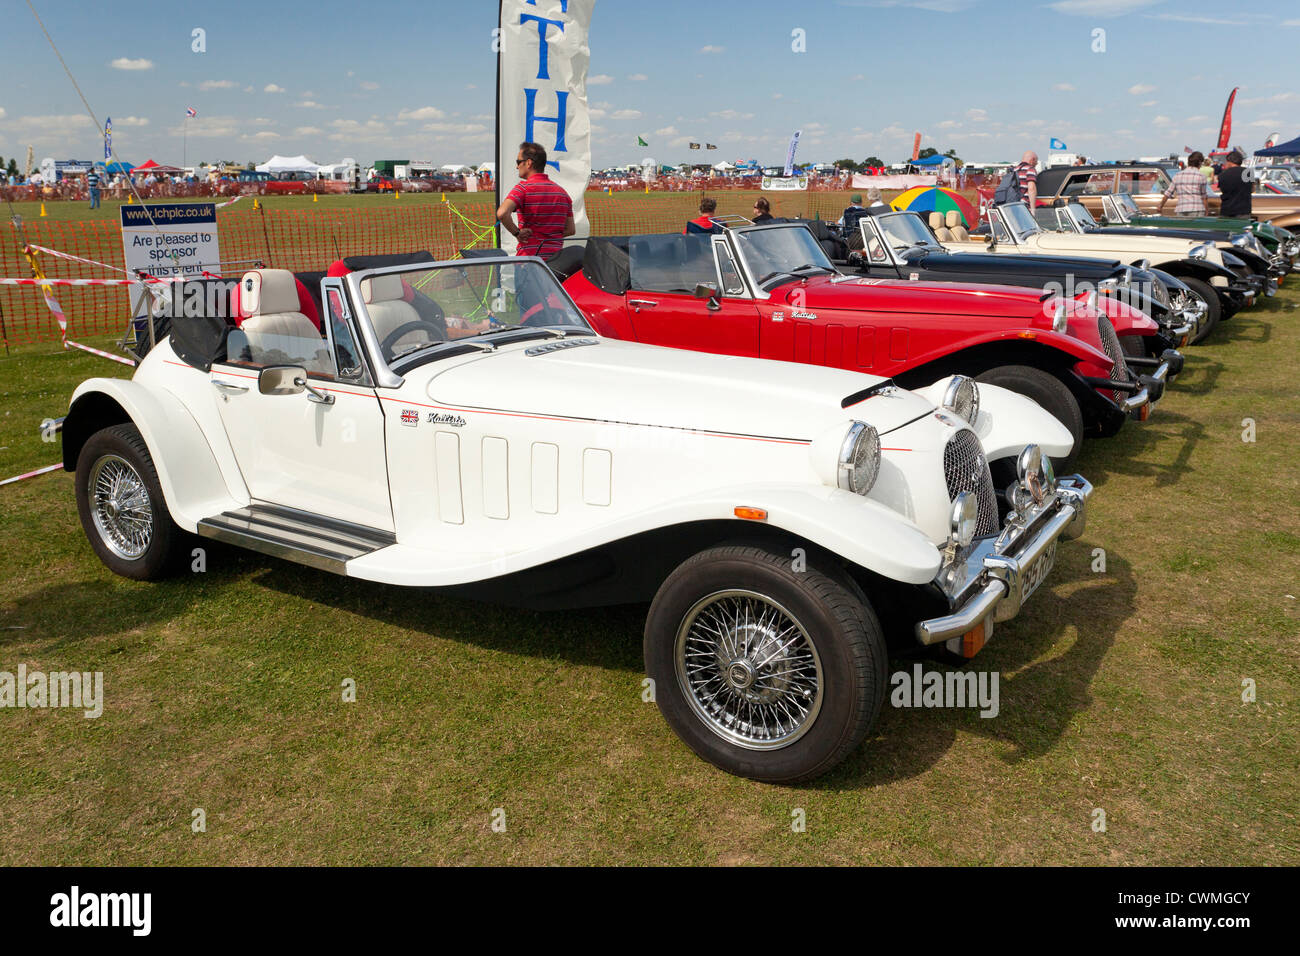 Panther Kallista car at a show in the UK - Stock Image